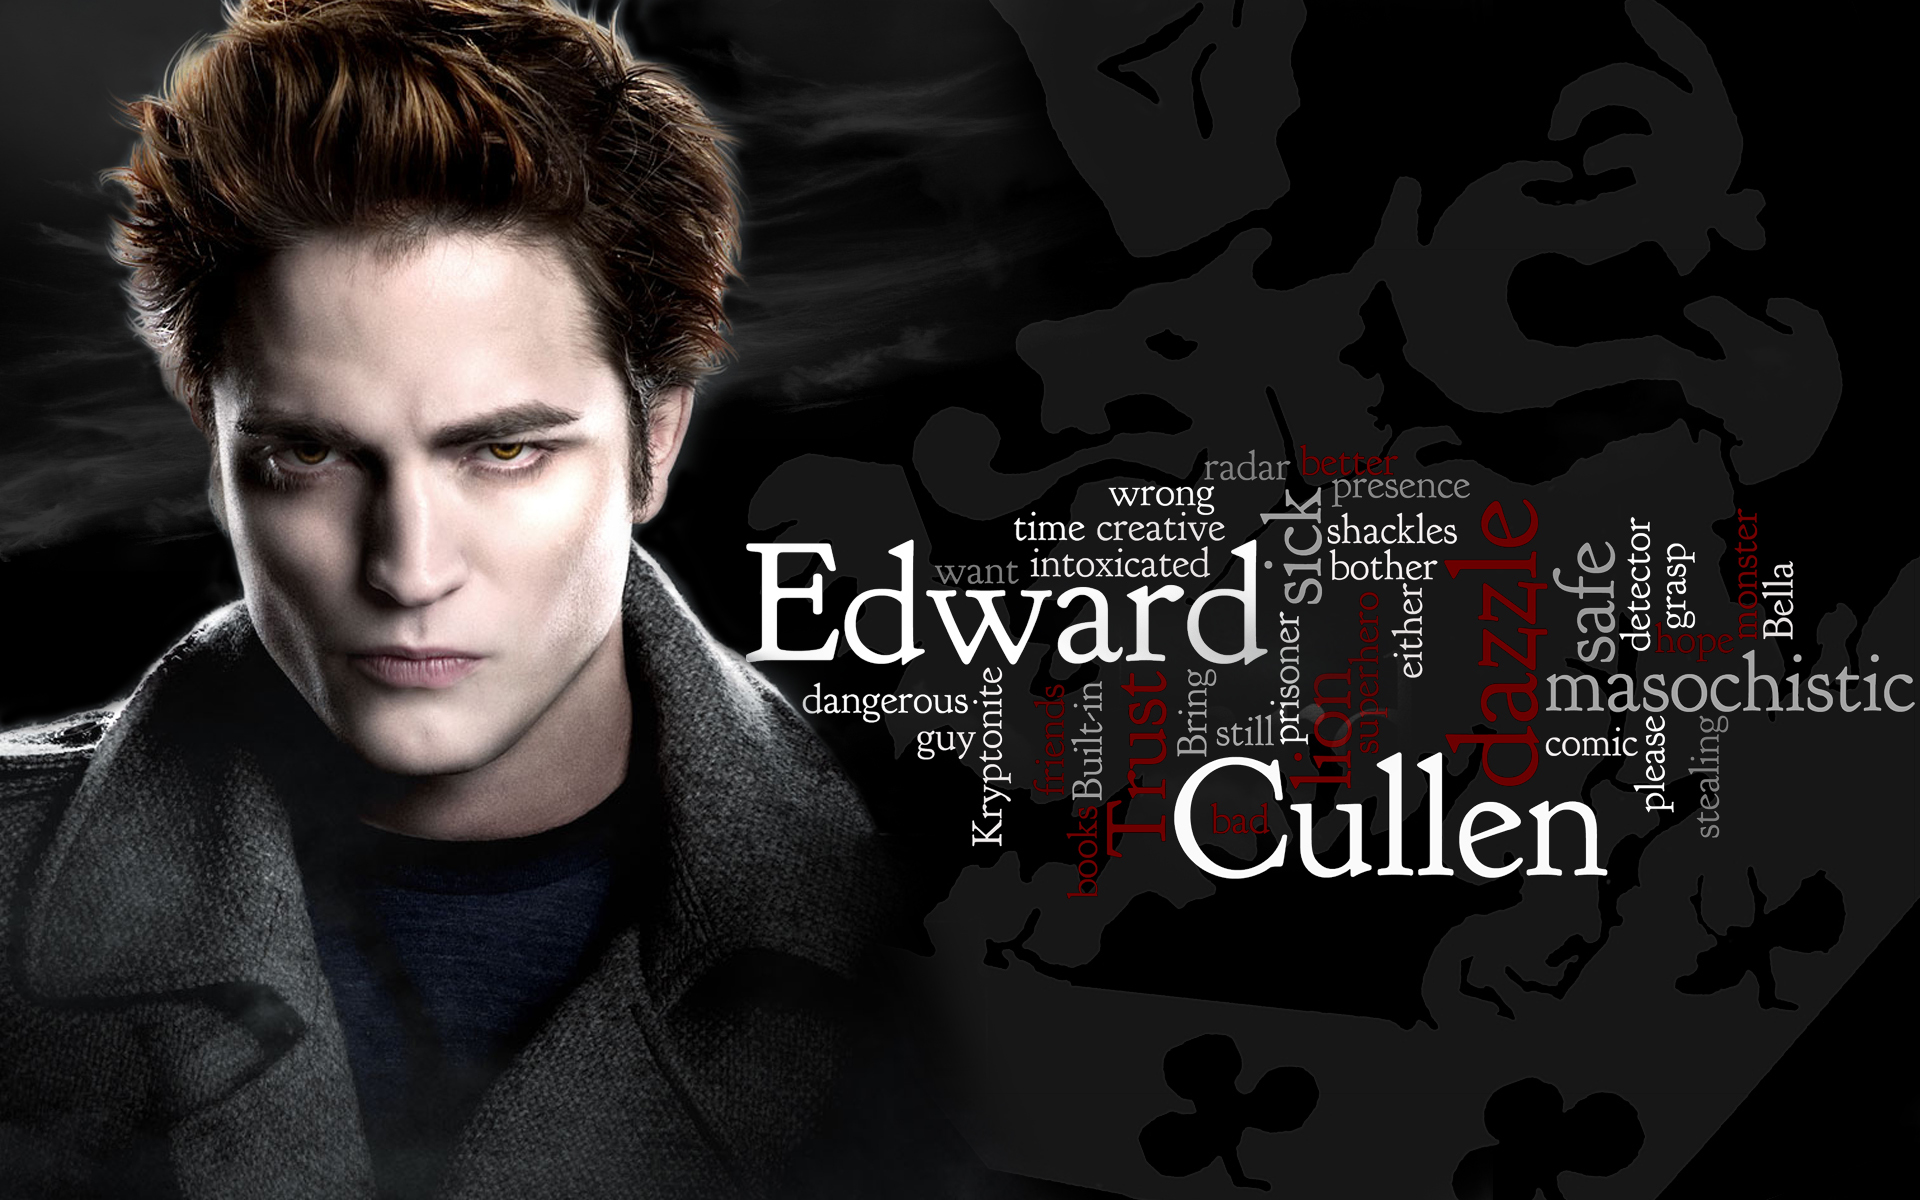 edward cullen words text HD Wallpaper